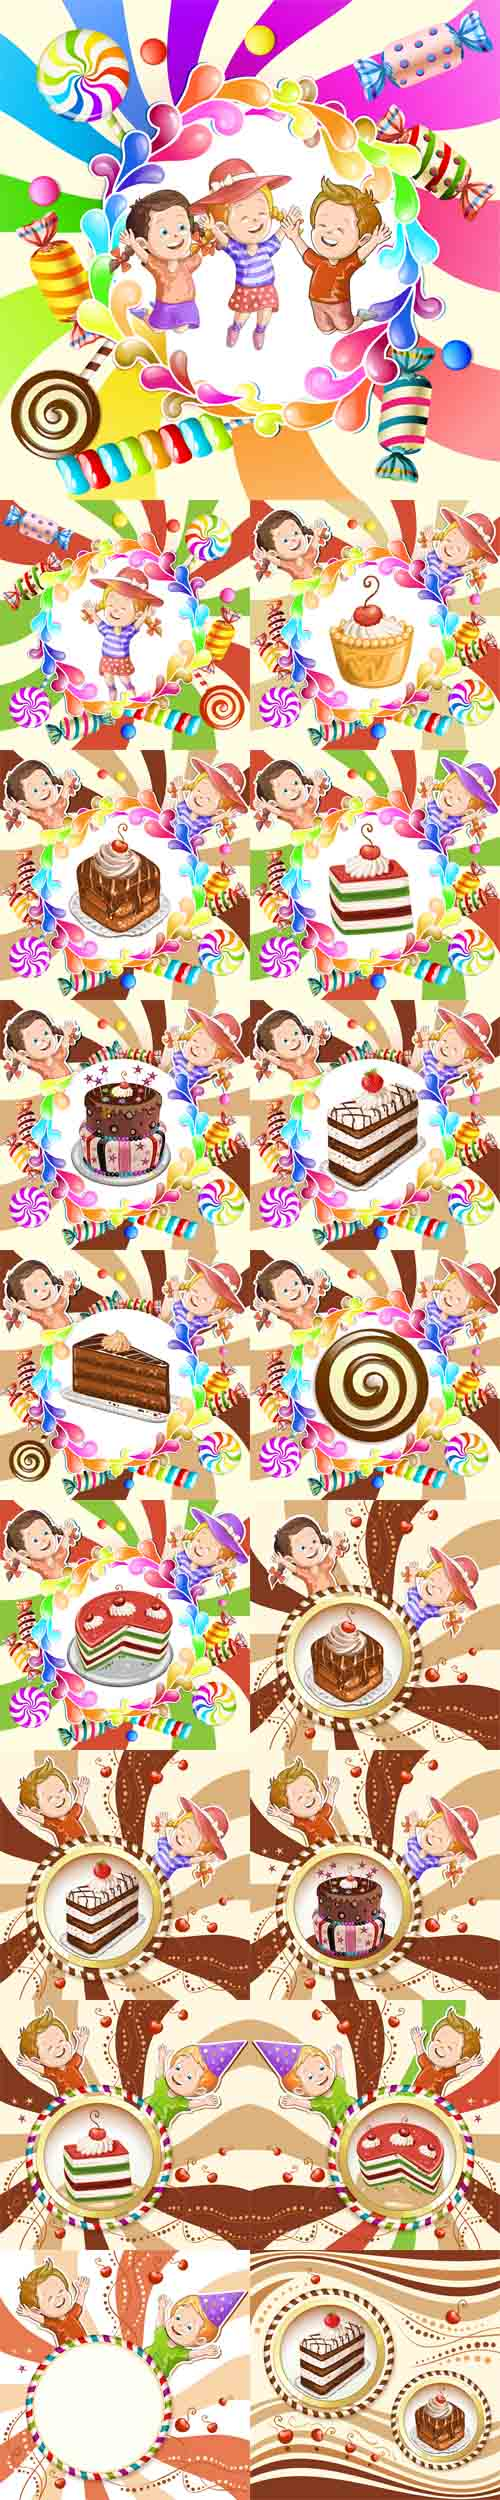 Vector Illustration of Kids with Cake and Candies